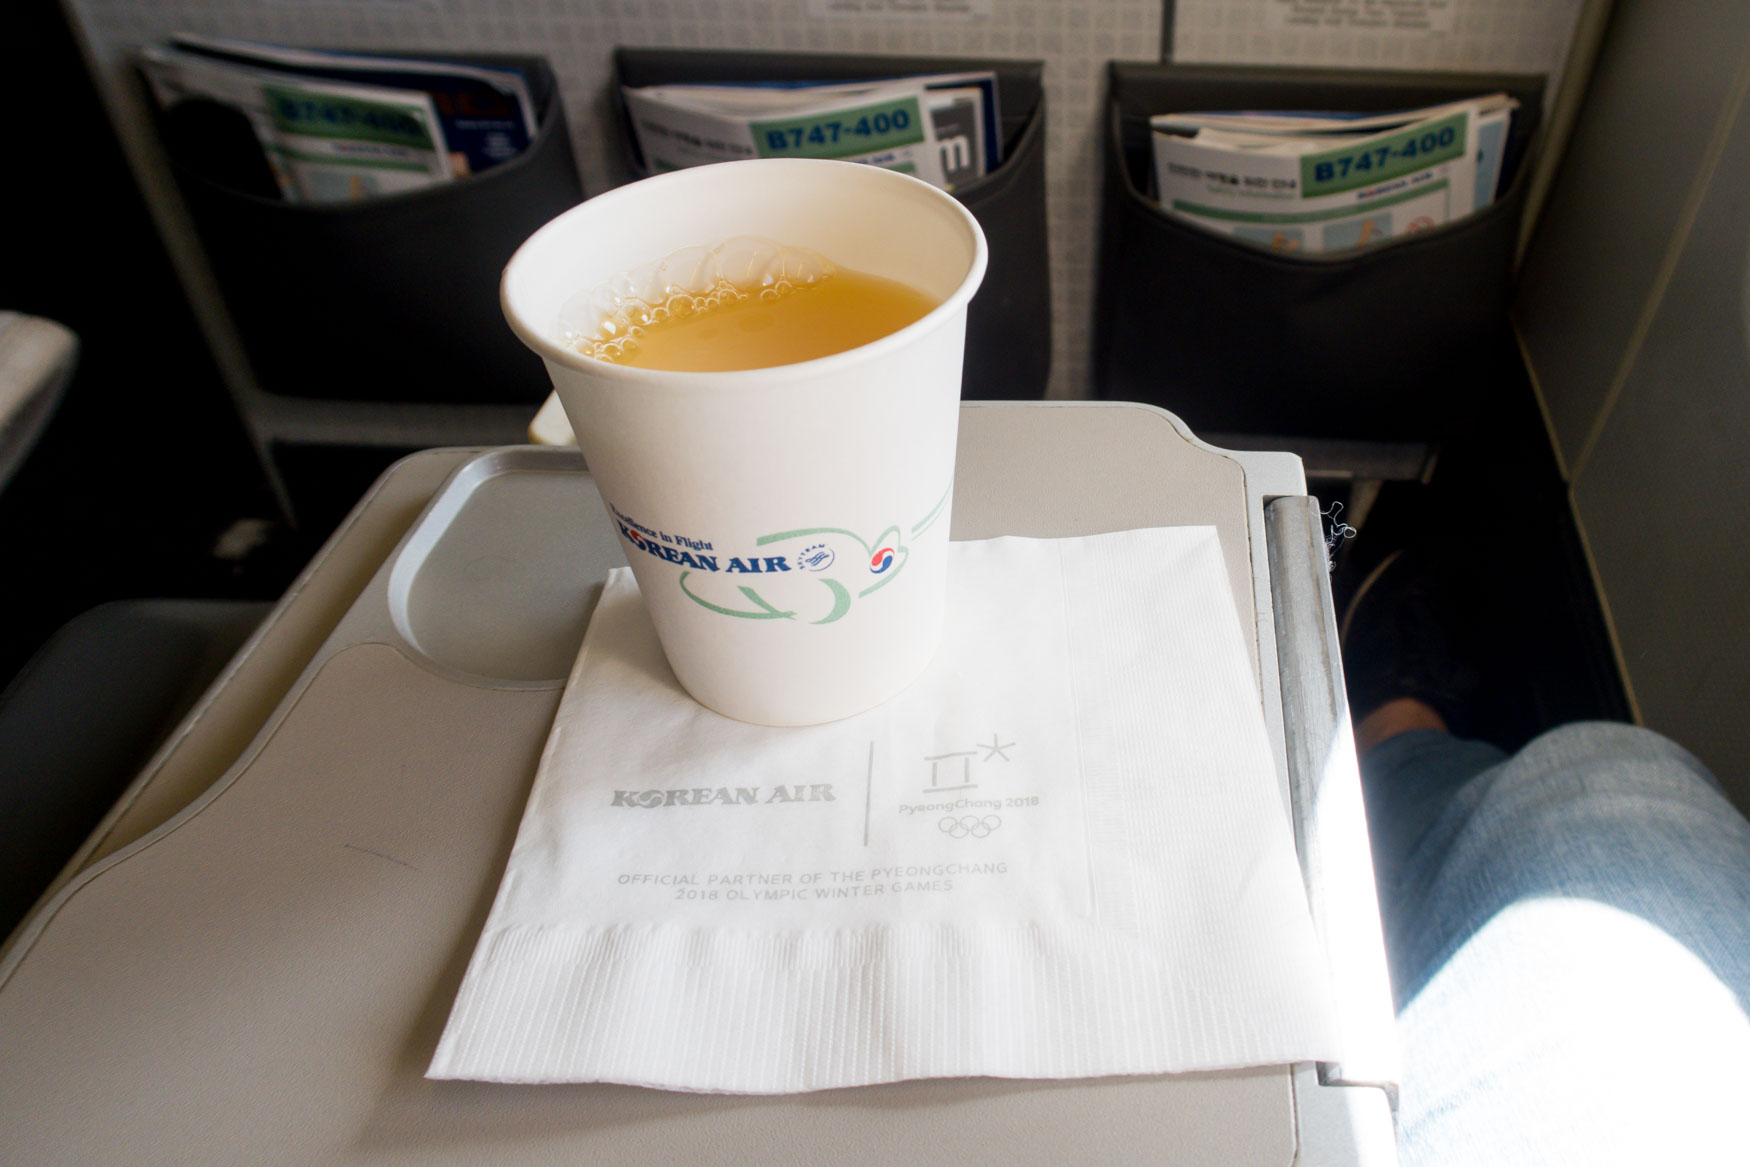 Korean Air Drink